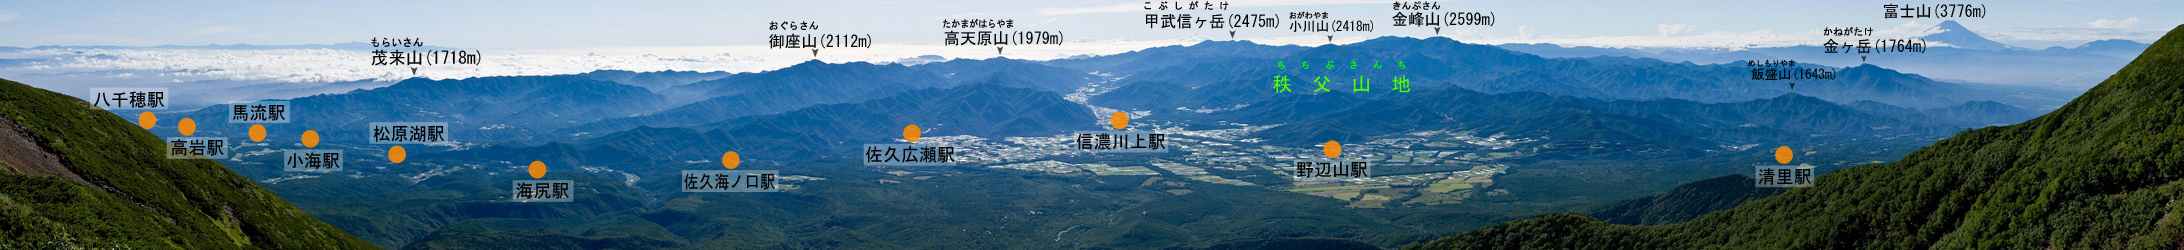 Okuchichibu_Mountains_from_Mt_Yokodake_01-6.jpg